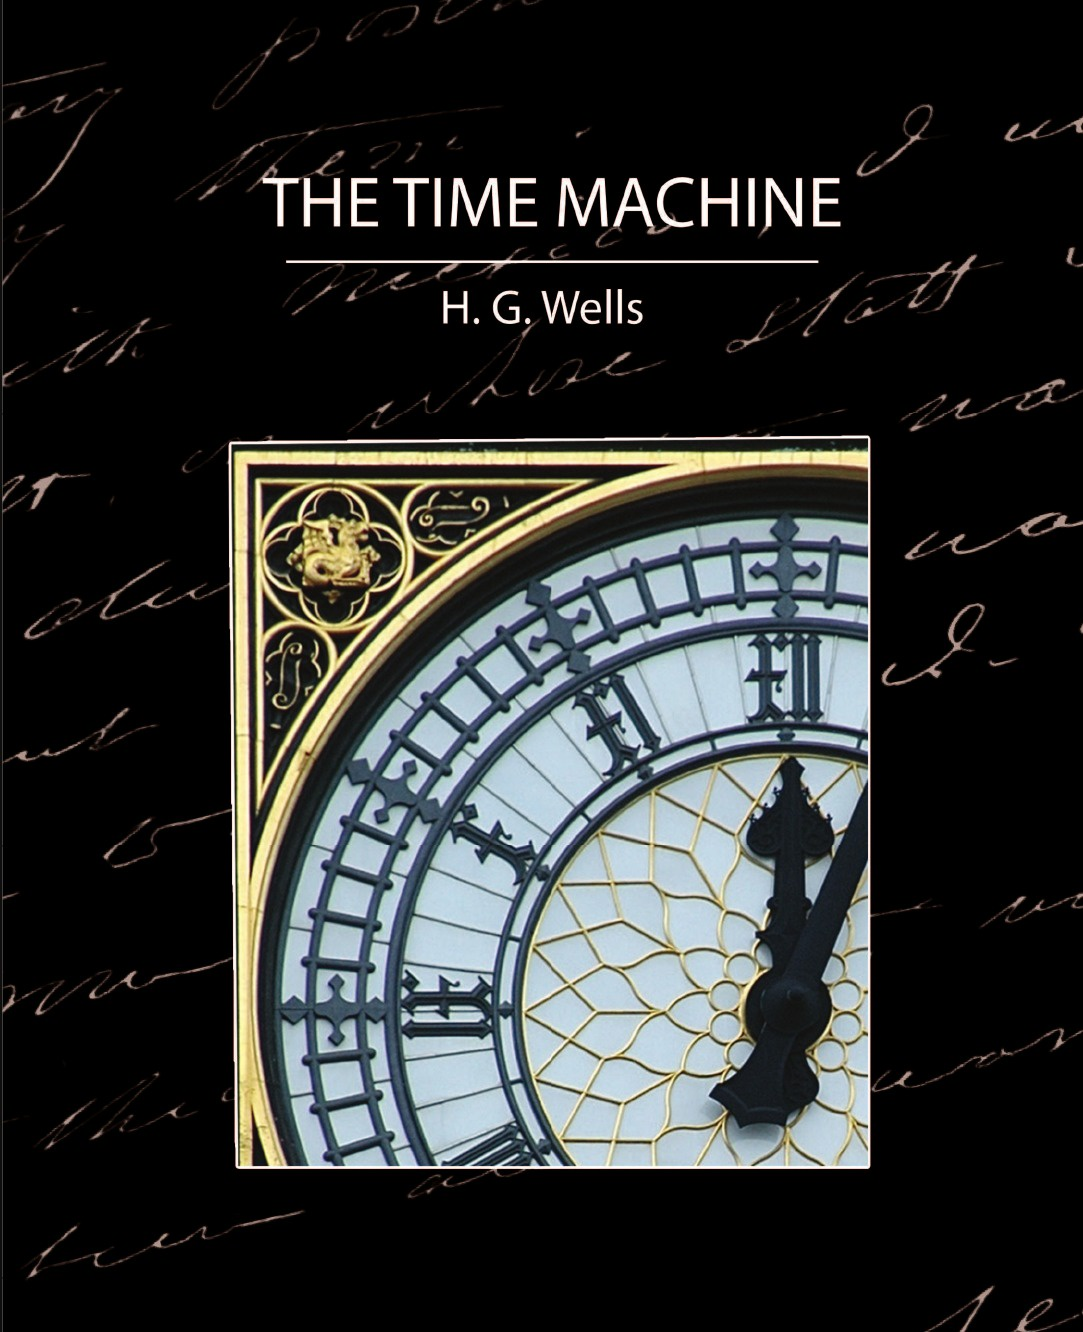 H. G. Wells, G. Wells H. G. Wells, H. G. Wells The Time Machine h g wells the wonderful visit